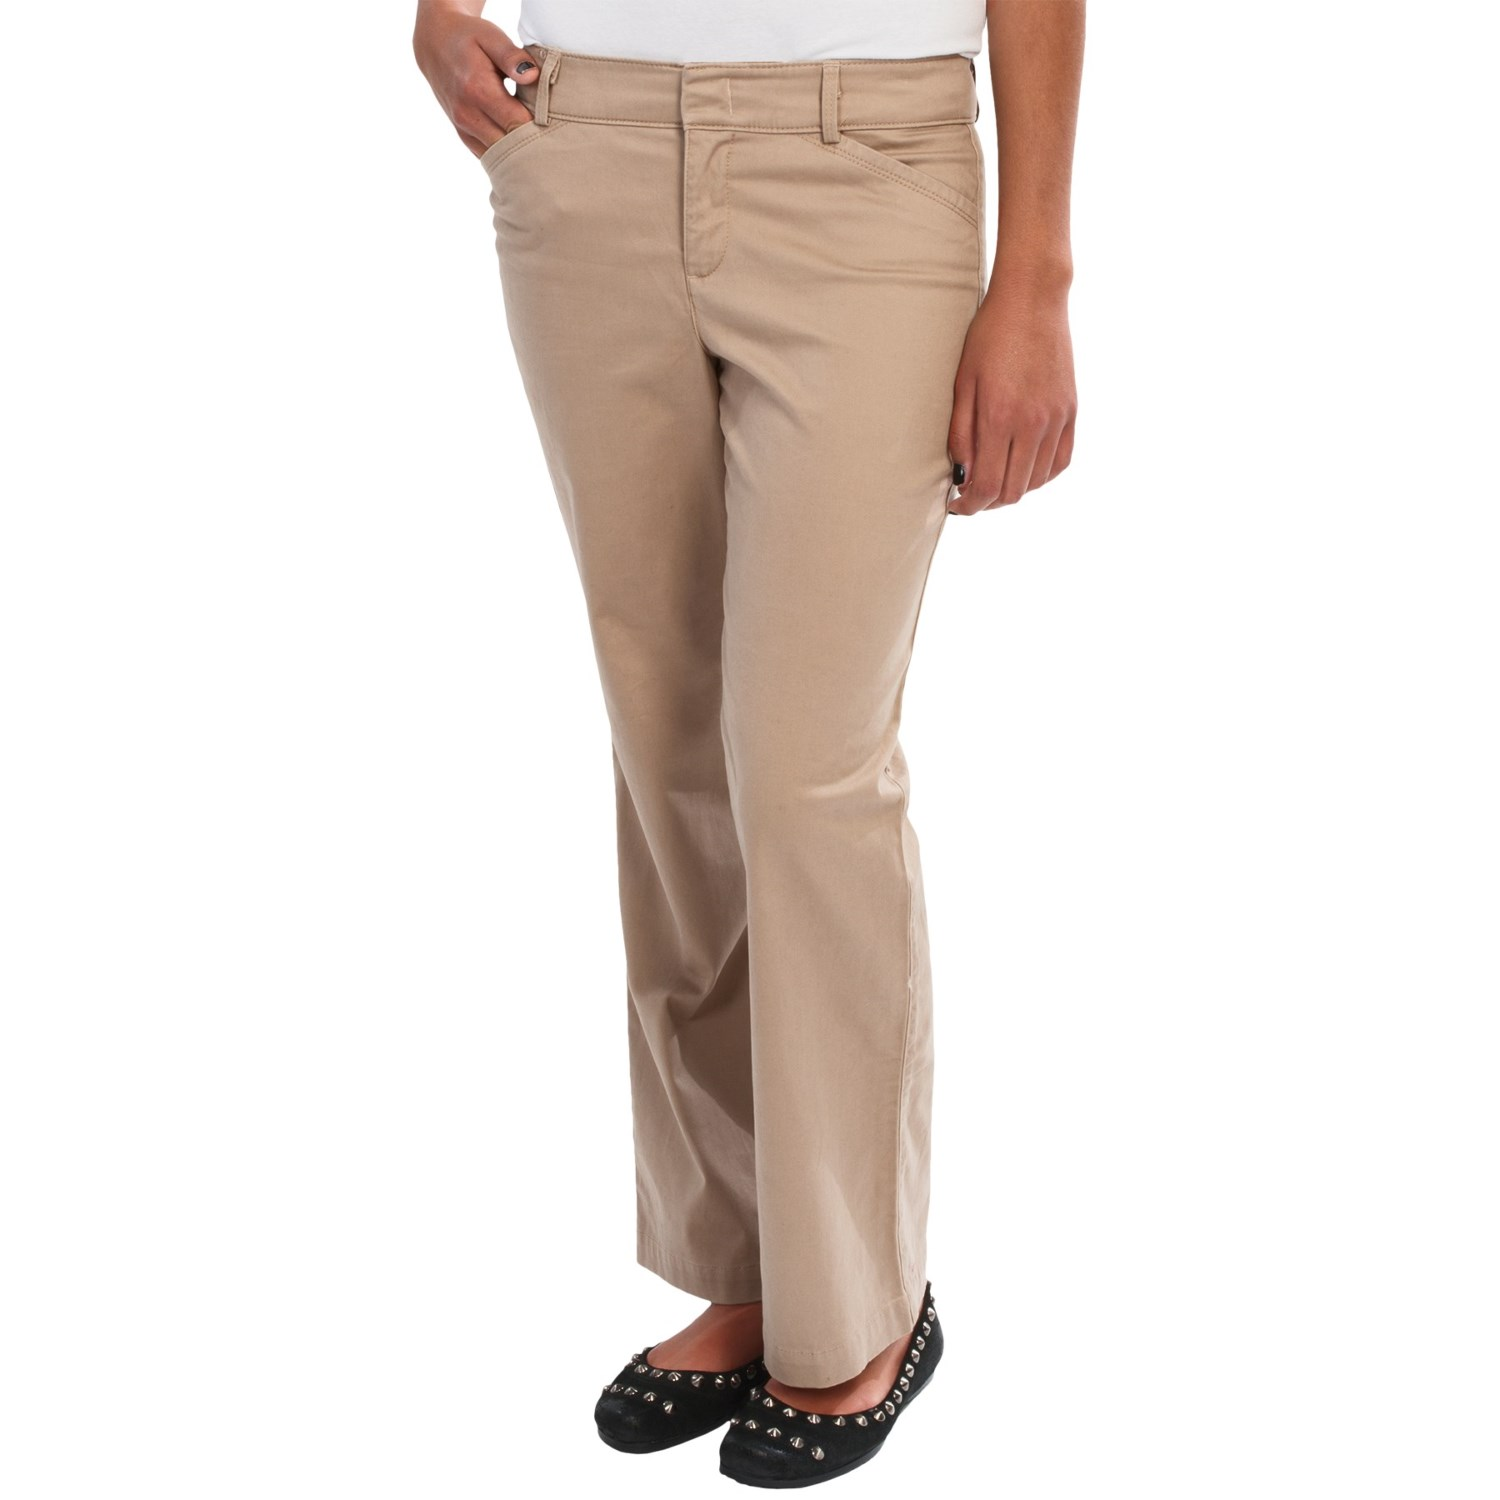 New Write Your Feedback About QuotBlack Womens Khaki Pantsquot Here